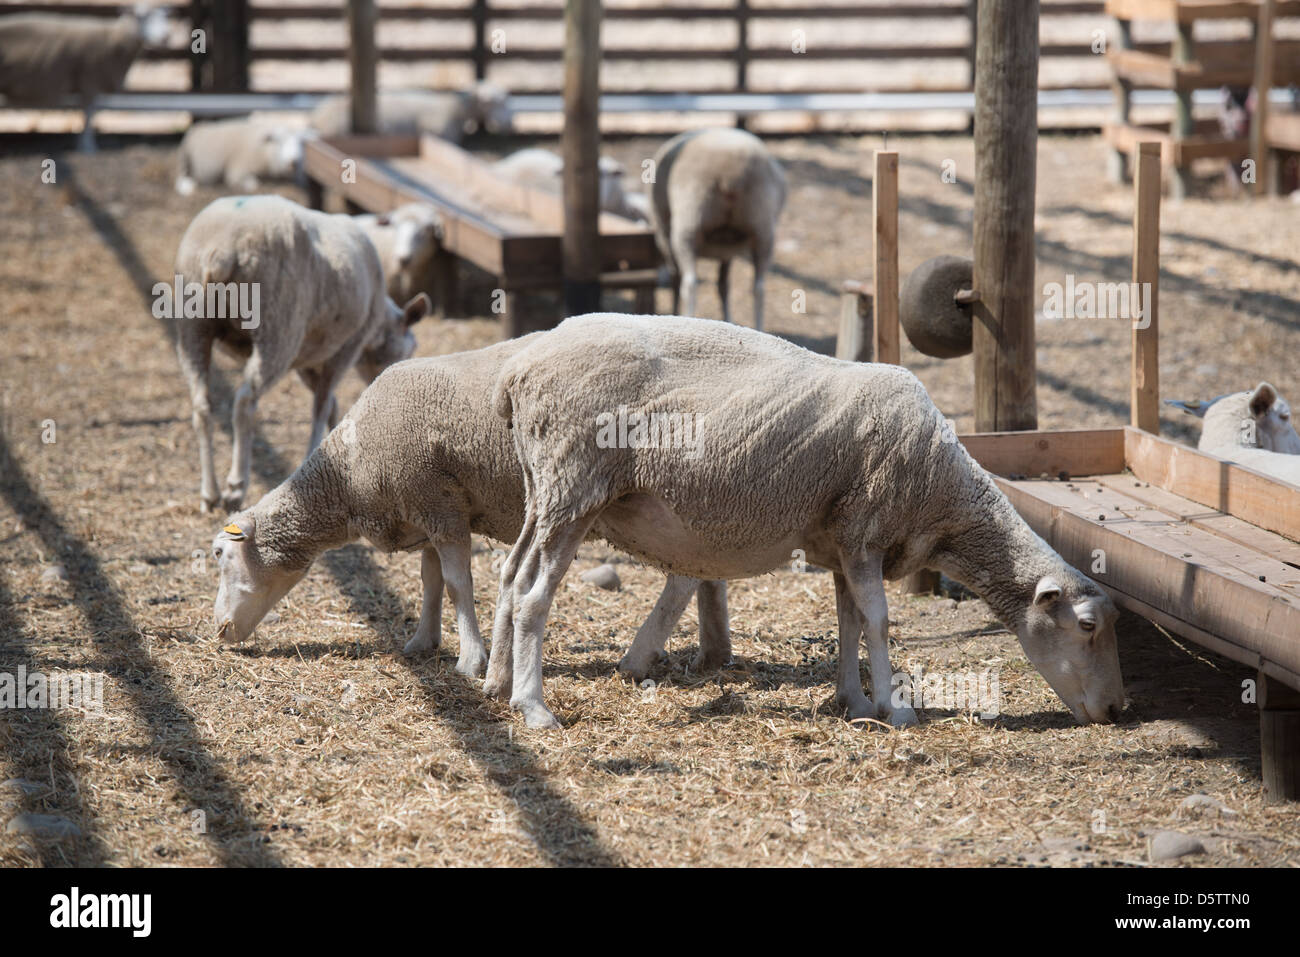 sheep ranch chat Leading provider of animal health care products, ultracruz supplements, grooming and critical care products for horses, livestock and dogs a division of santa cruz biotechnology.